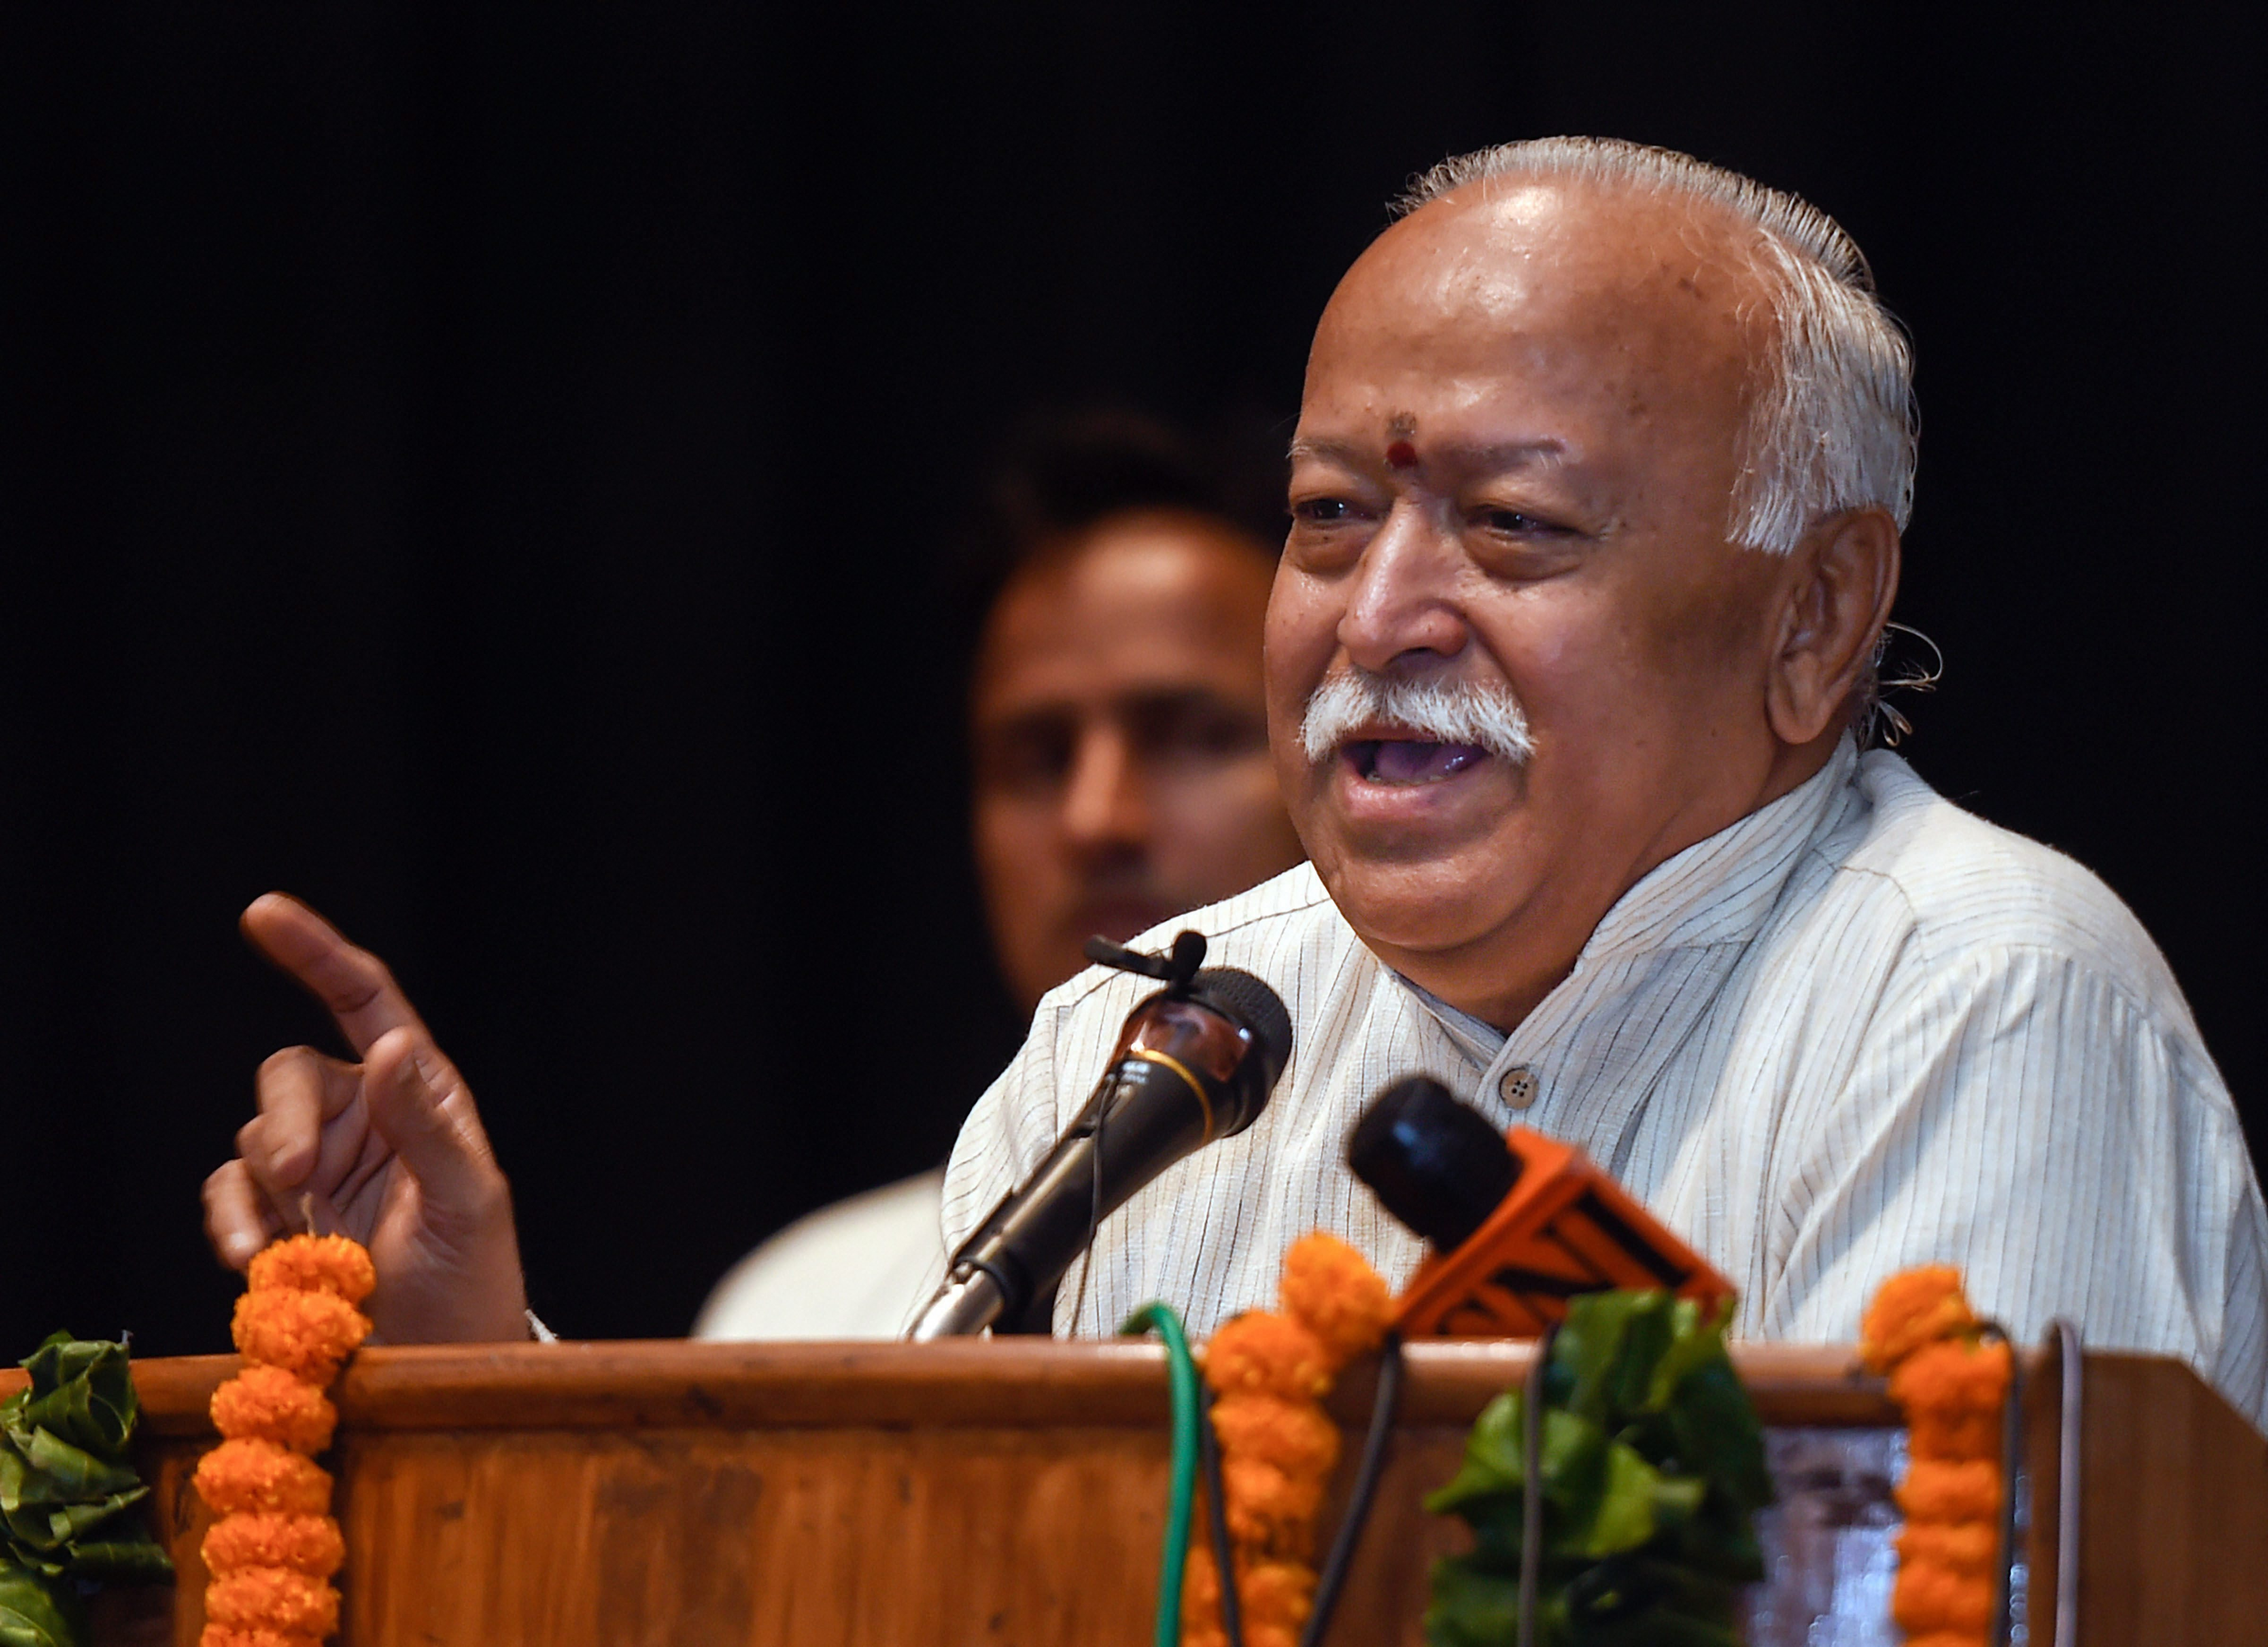 Will Mohan Bhagwat cement his place among the all-time greats in the Sangh pantheon or will this prove be his undoing?